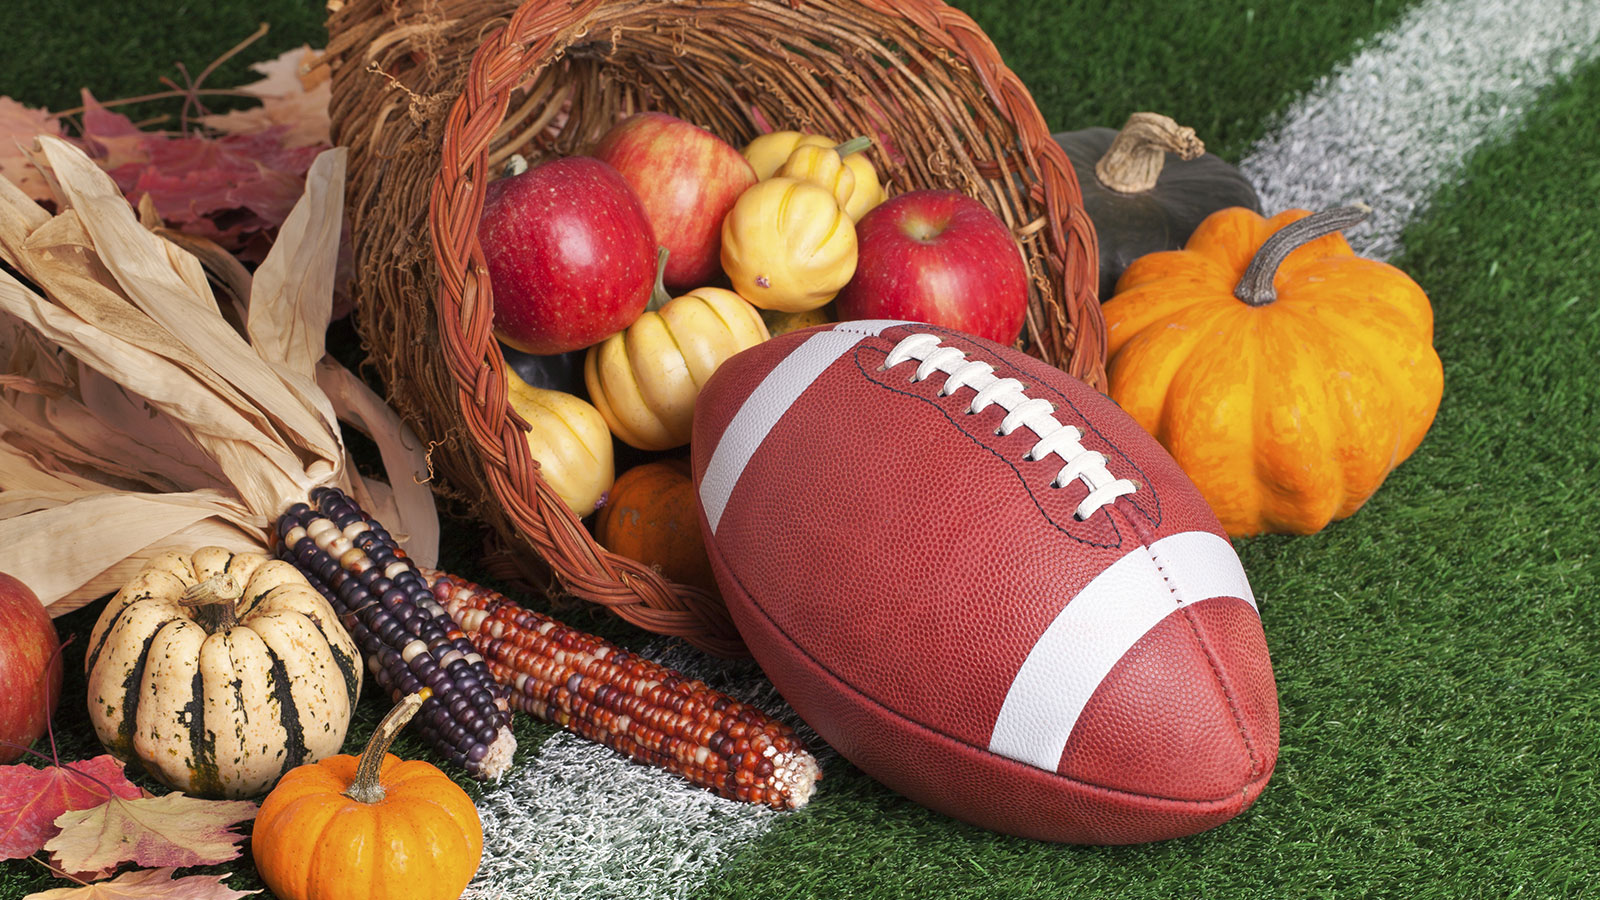 Thanksgiving cornucopia with football on football field.